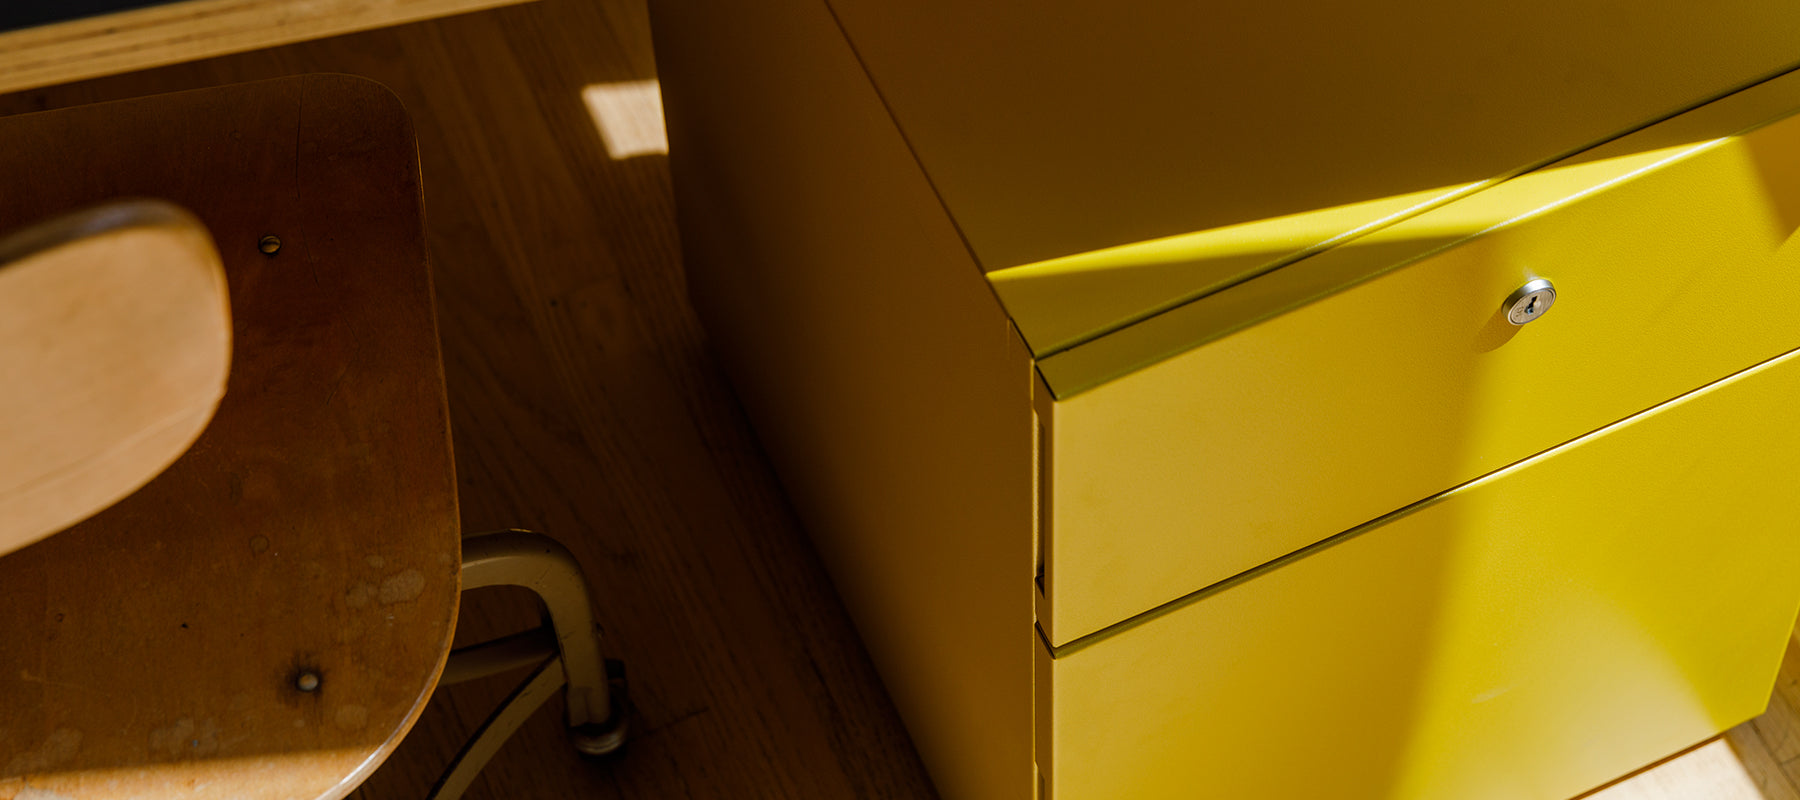 Heartwork Building Block Pedestal in warm yellow under a desk